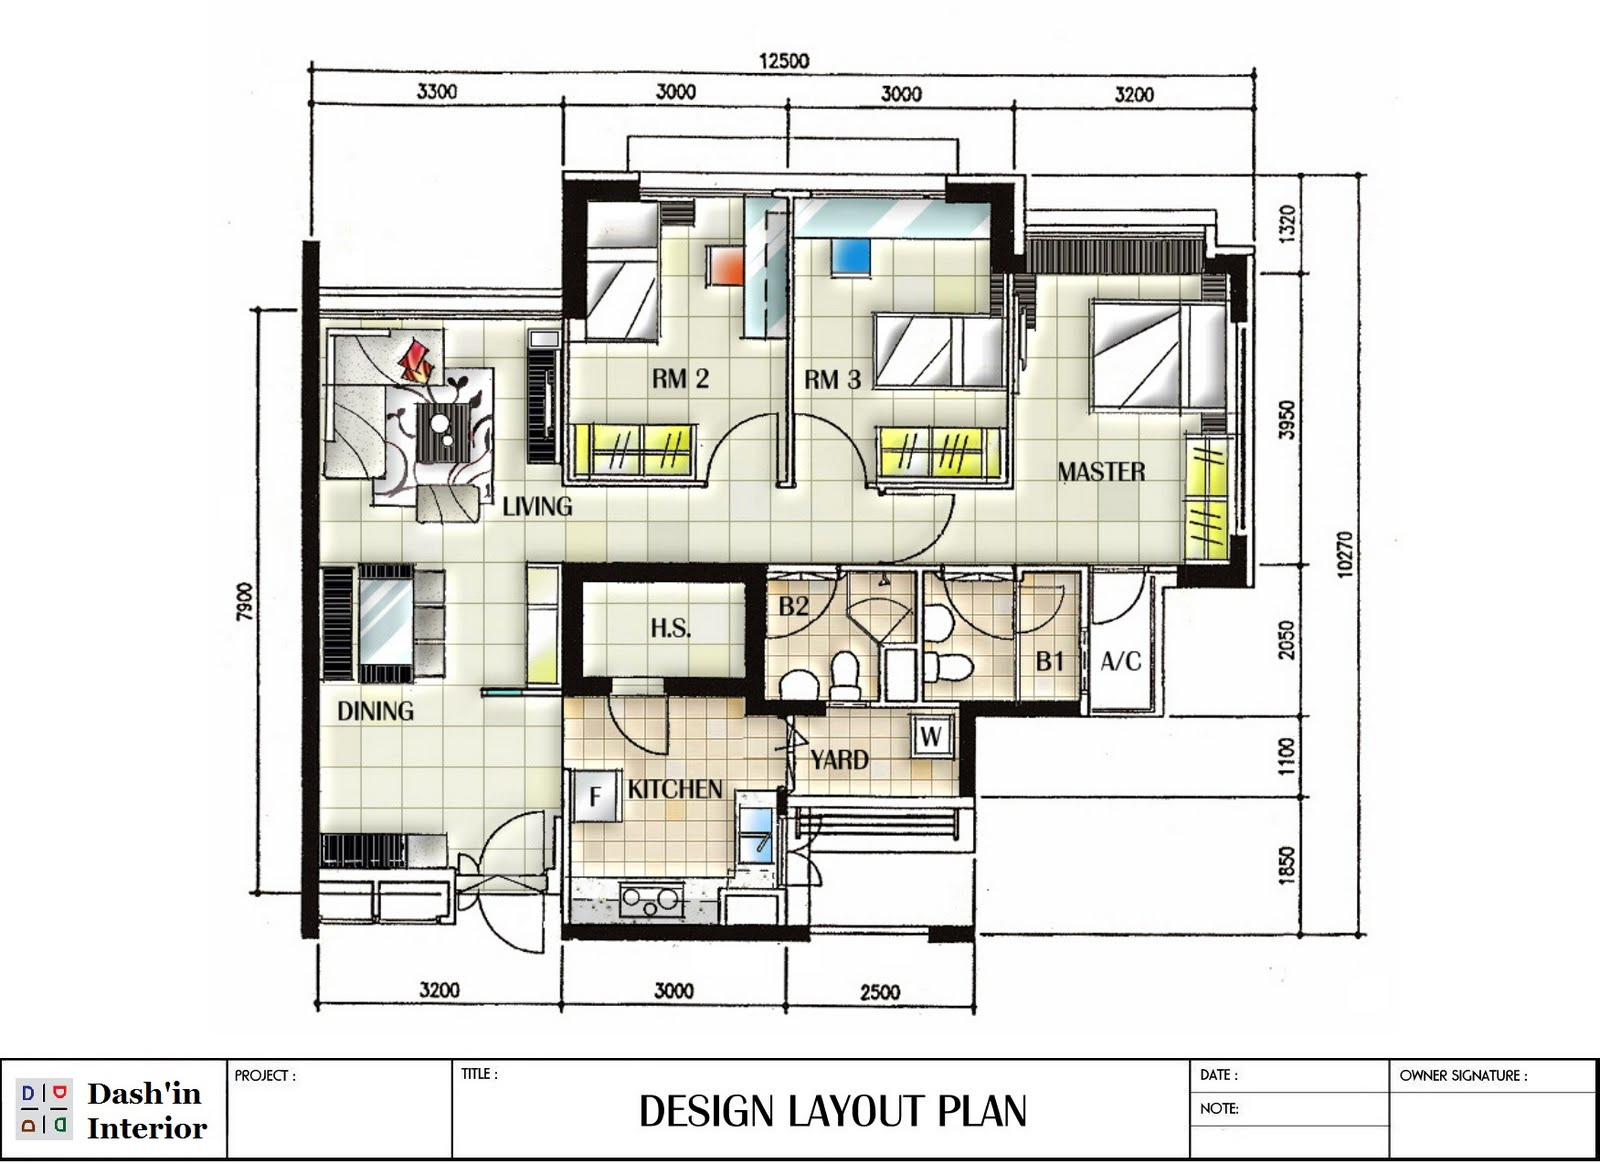 Inspirational Interior Design Floor Plan ArchitectureNice - Design a floor plan template